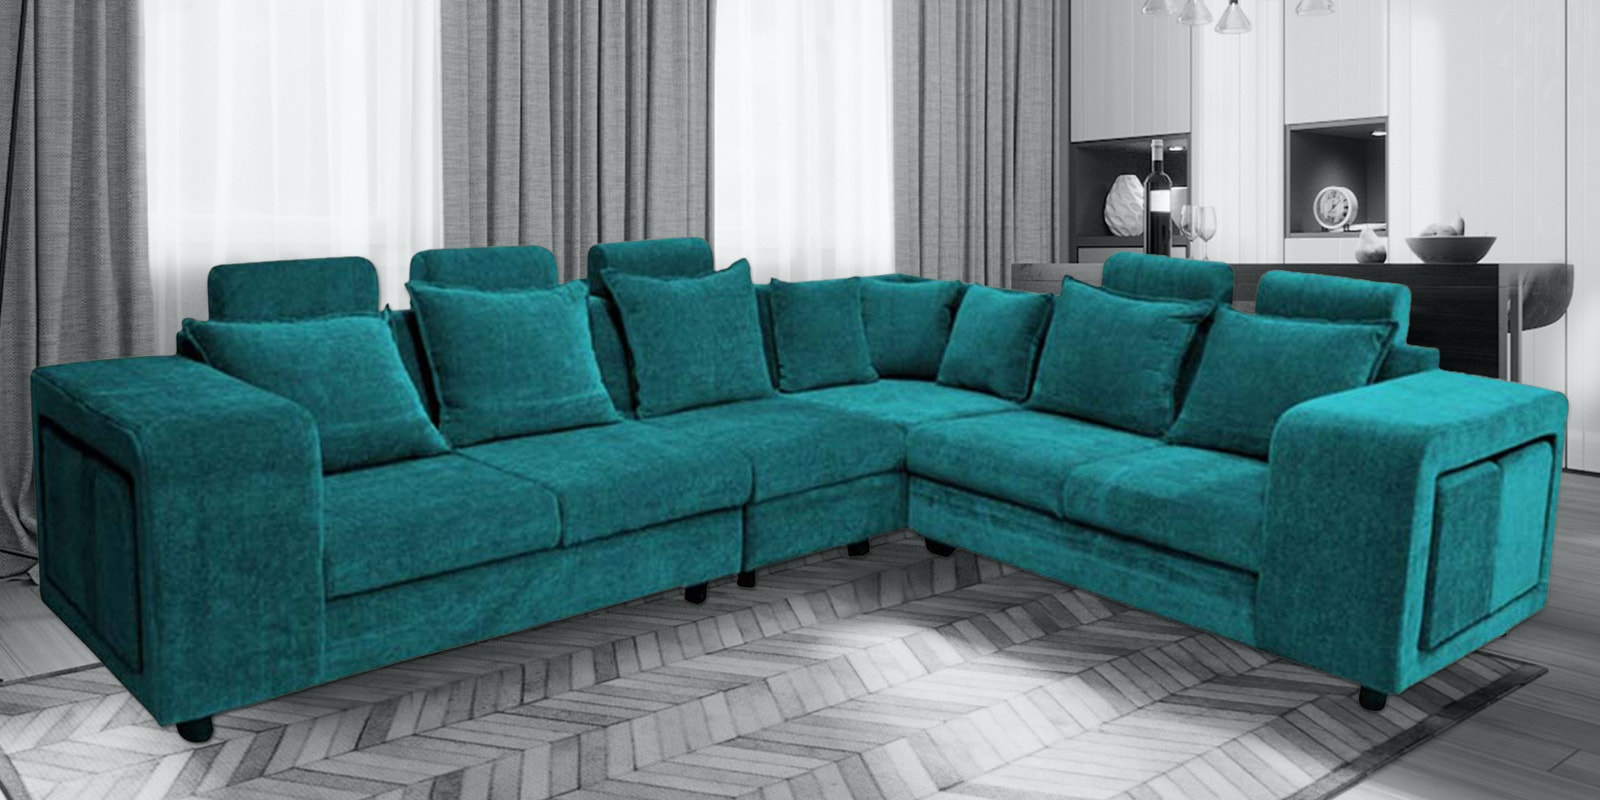 Modular Lounge Sale Direct – Get Outstanding Discounts On Premium Leather Couches